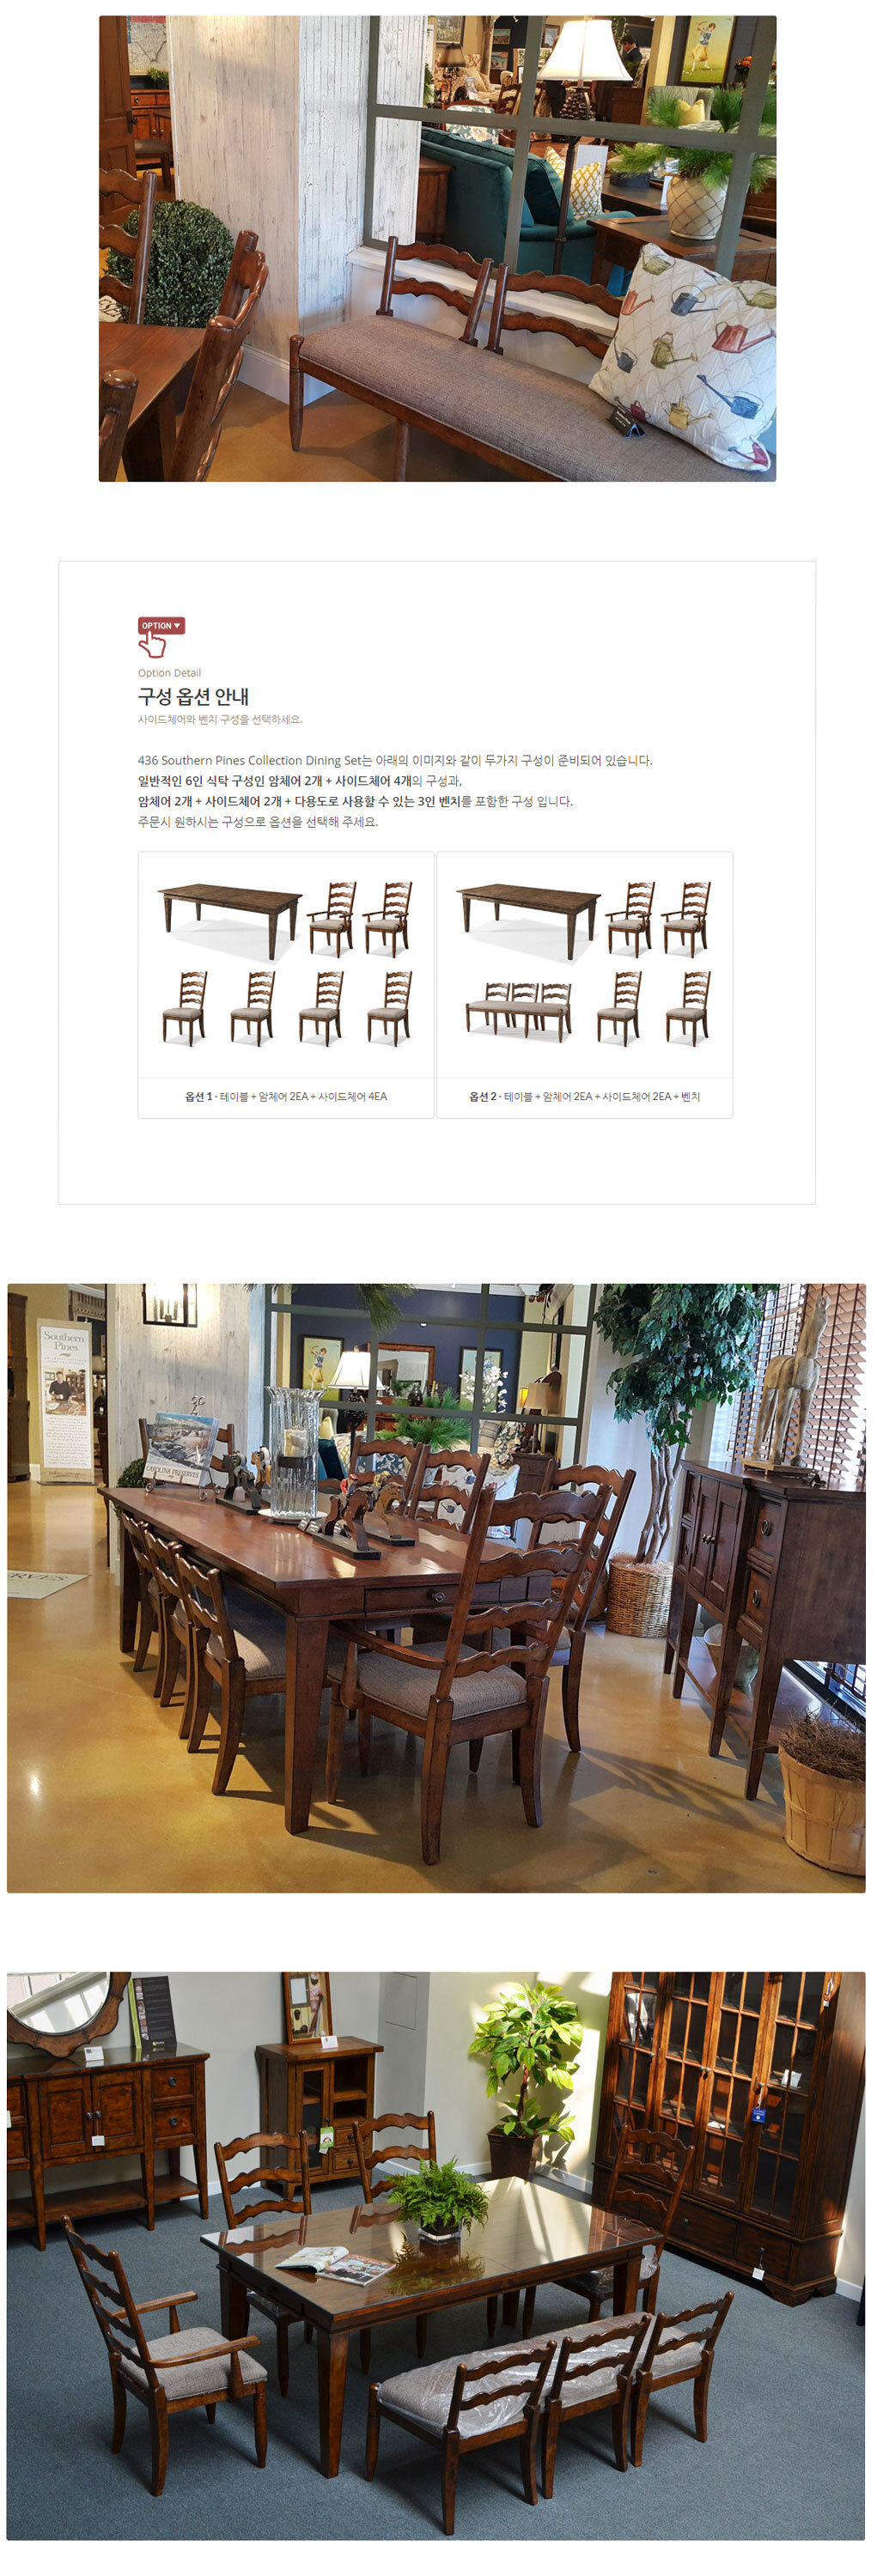 436_southern_table_04.jpg